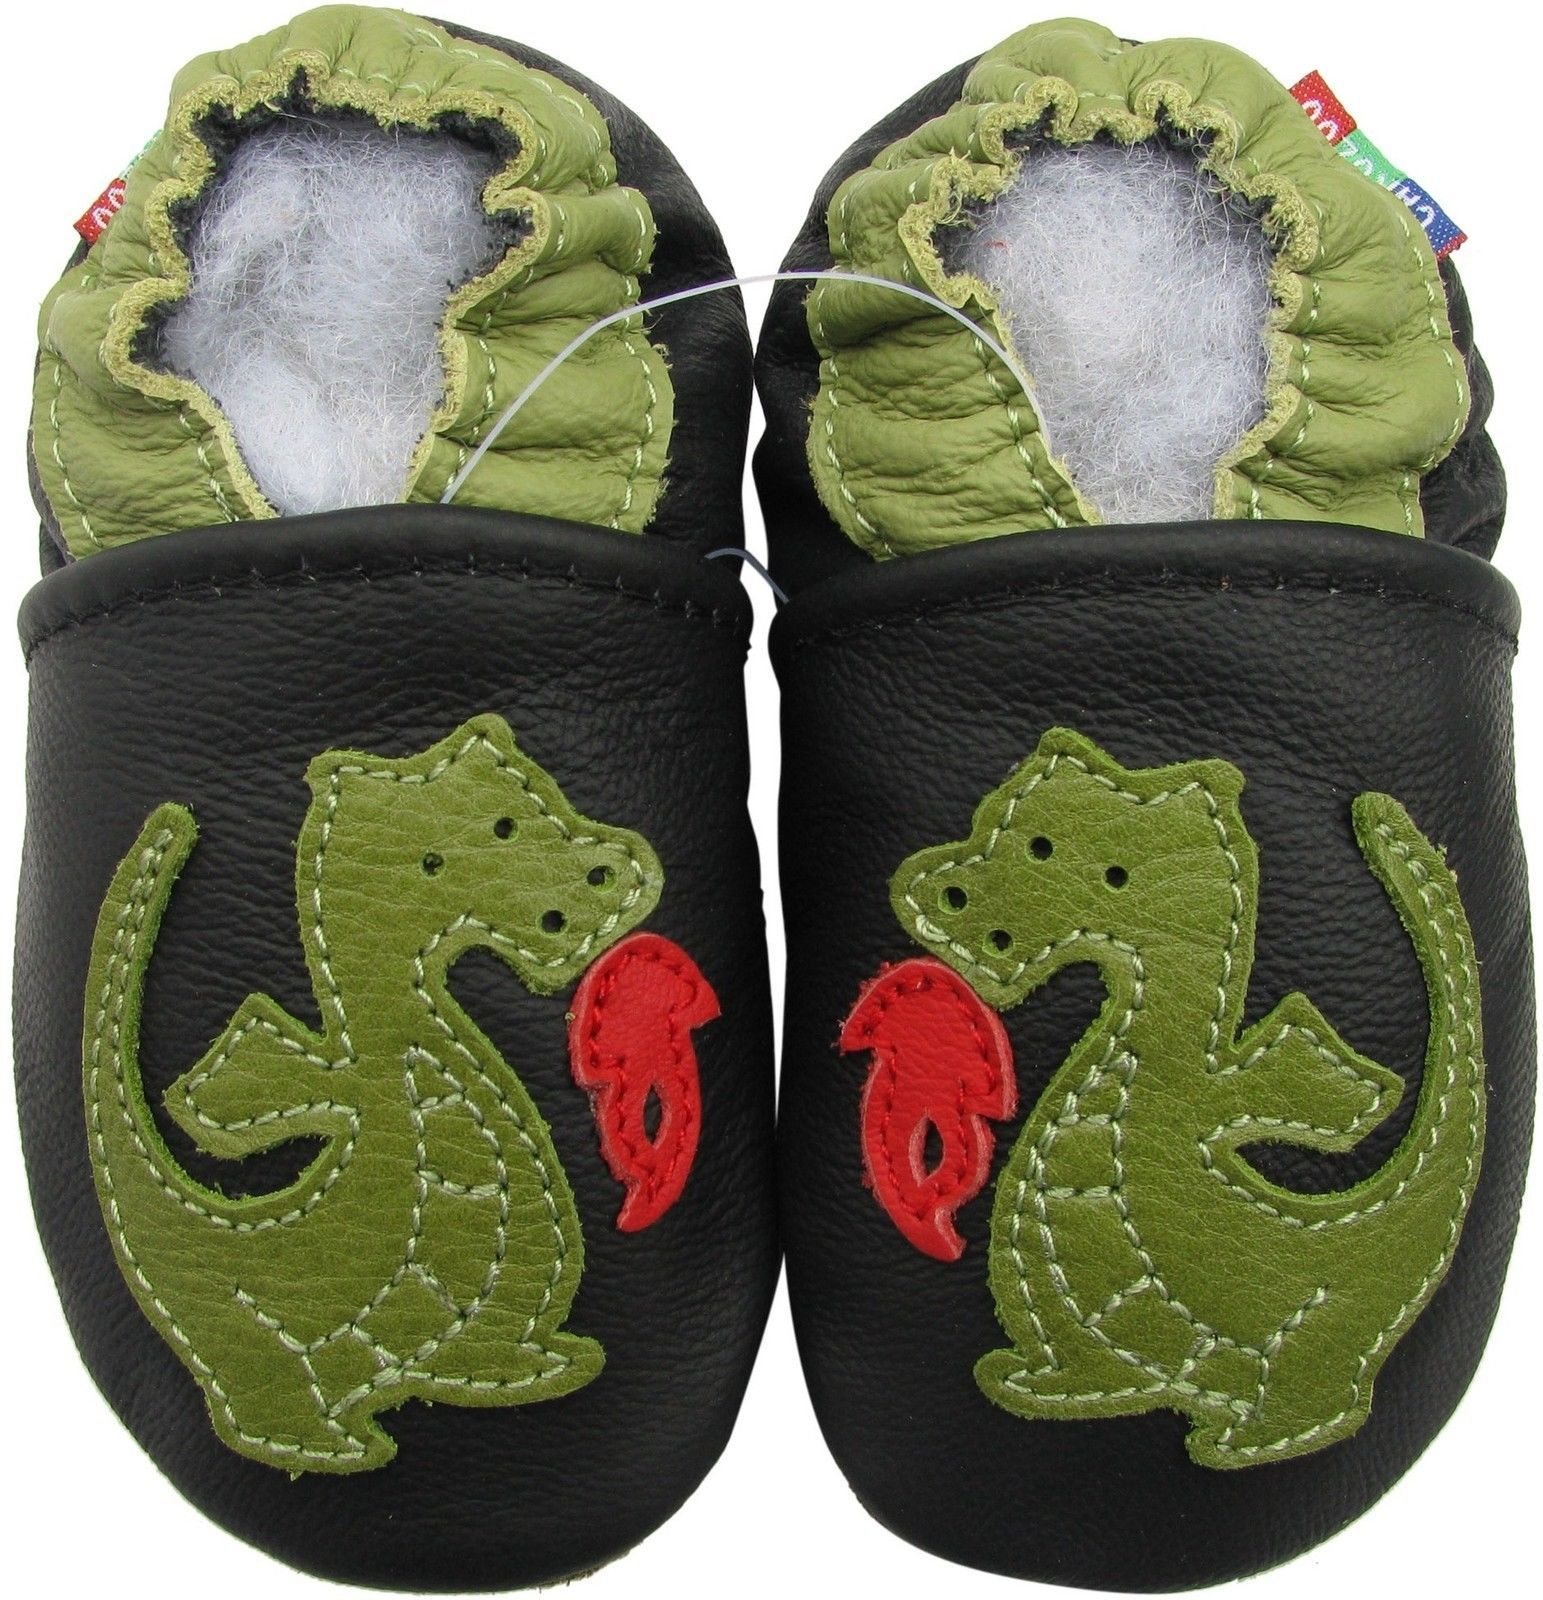 carozoo fire dragon black 6-12m soft sole leather baby shoes